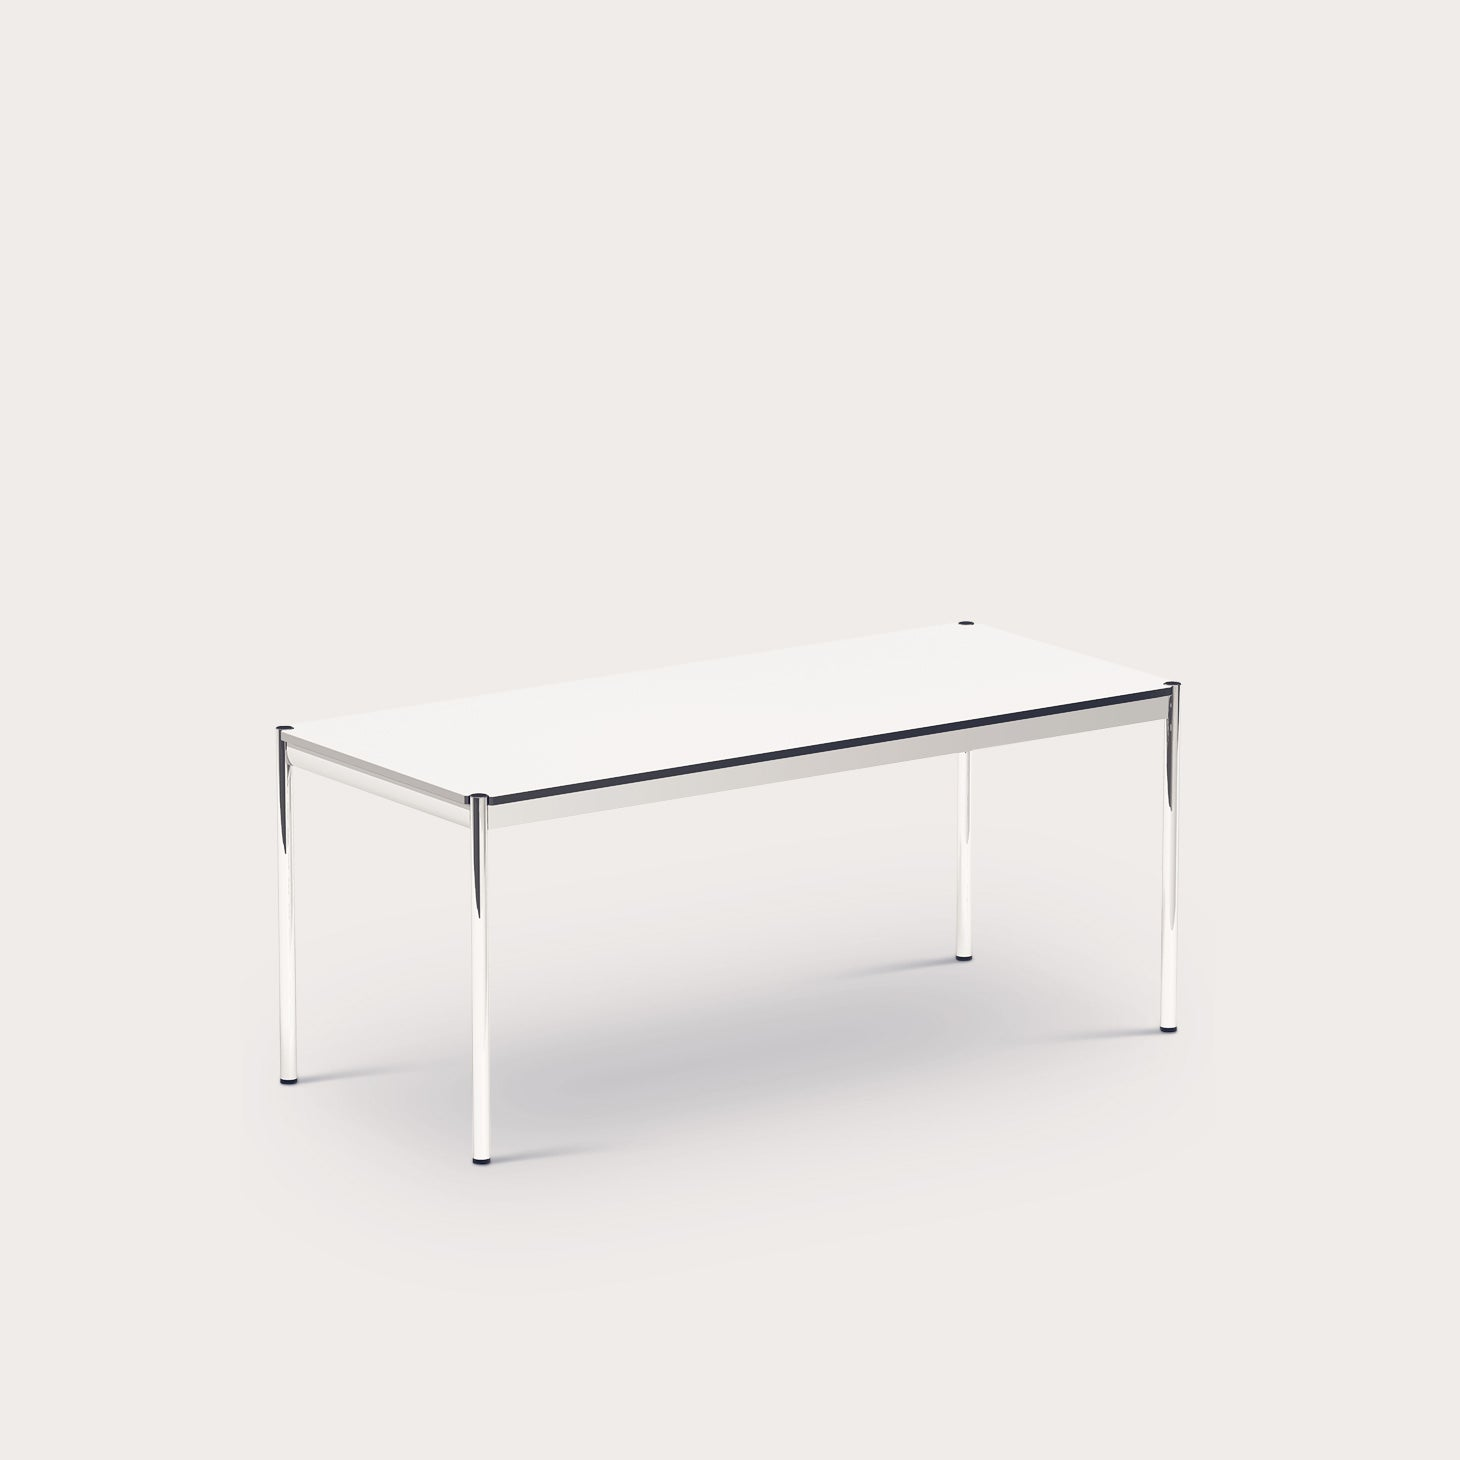 Haller Table T69 Tables Fritz Haller Designer Furniture Sku: 000-180-20042